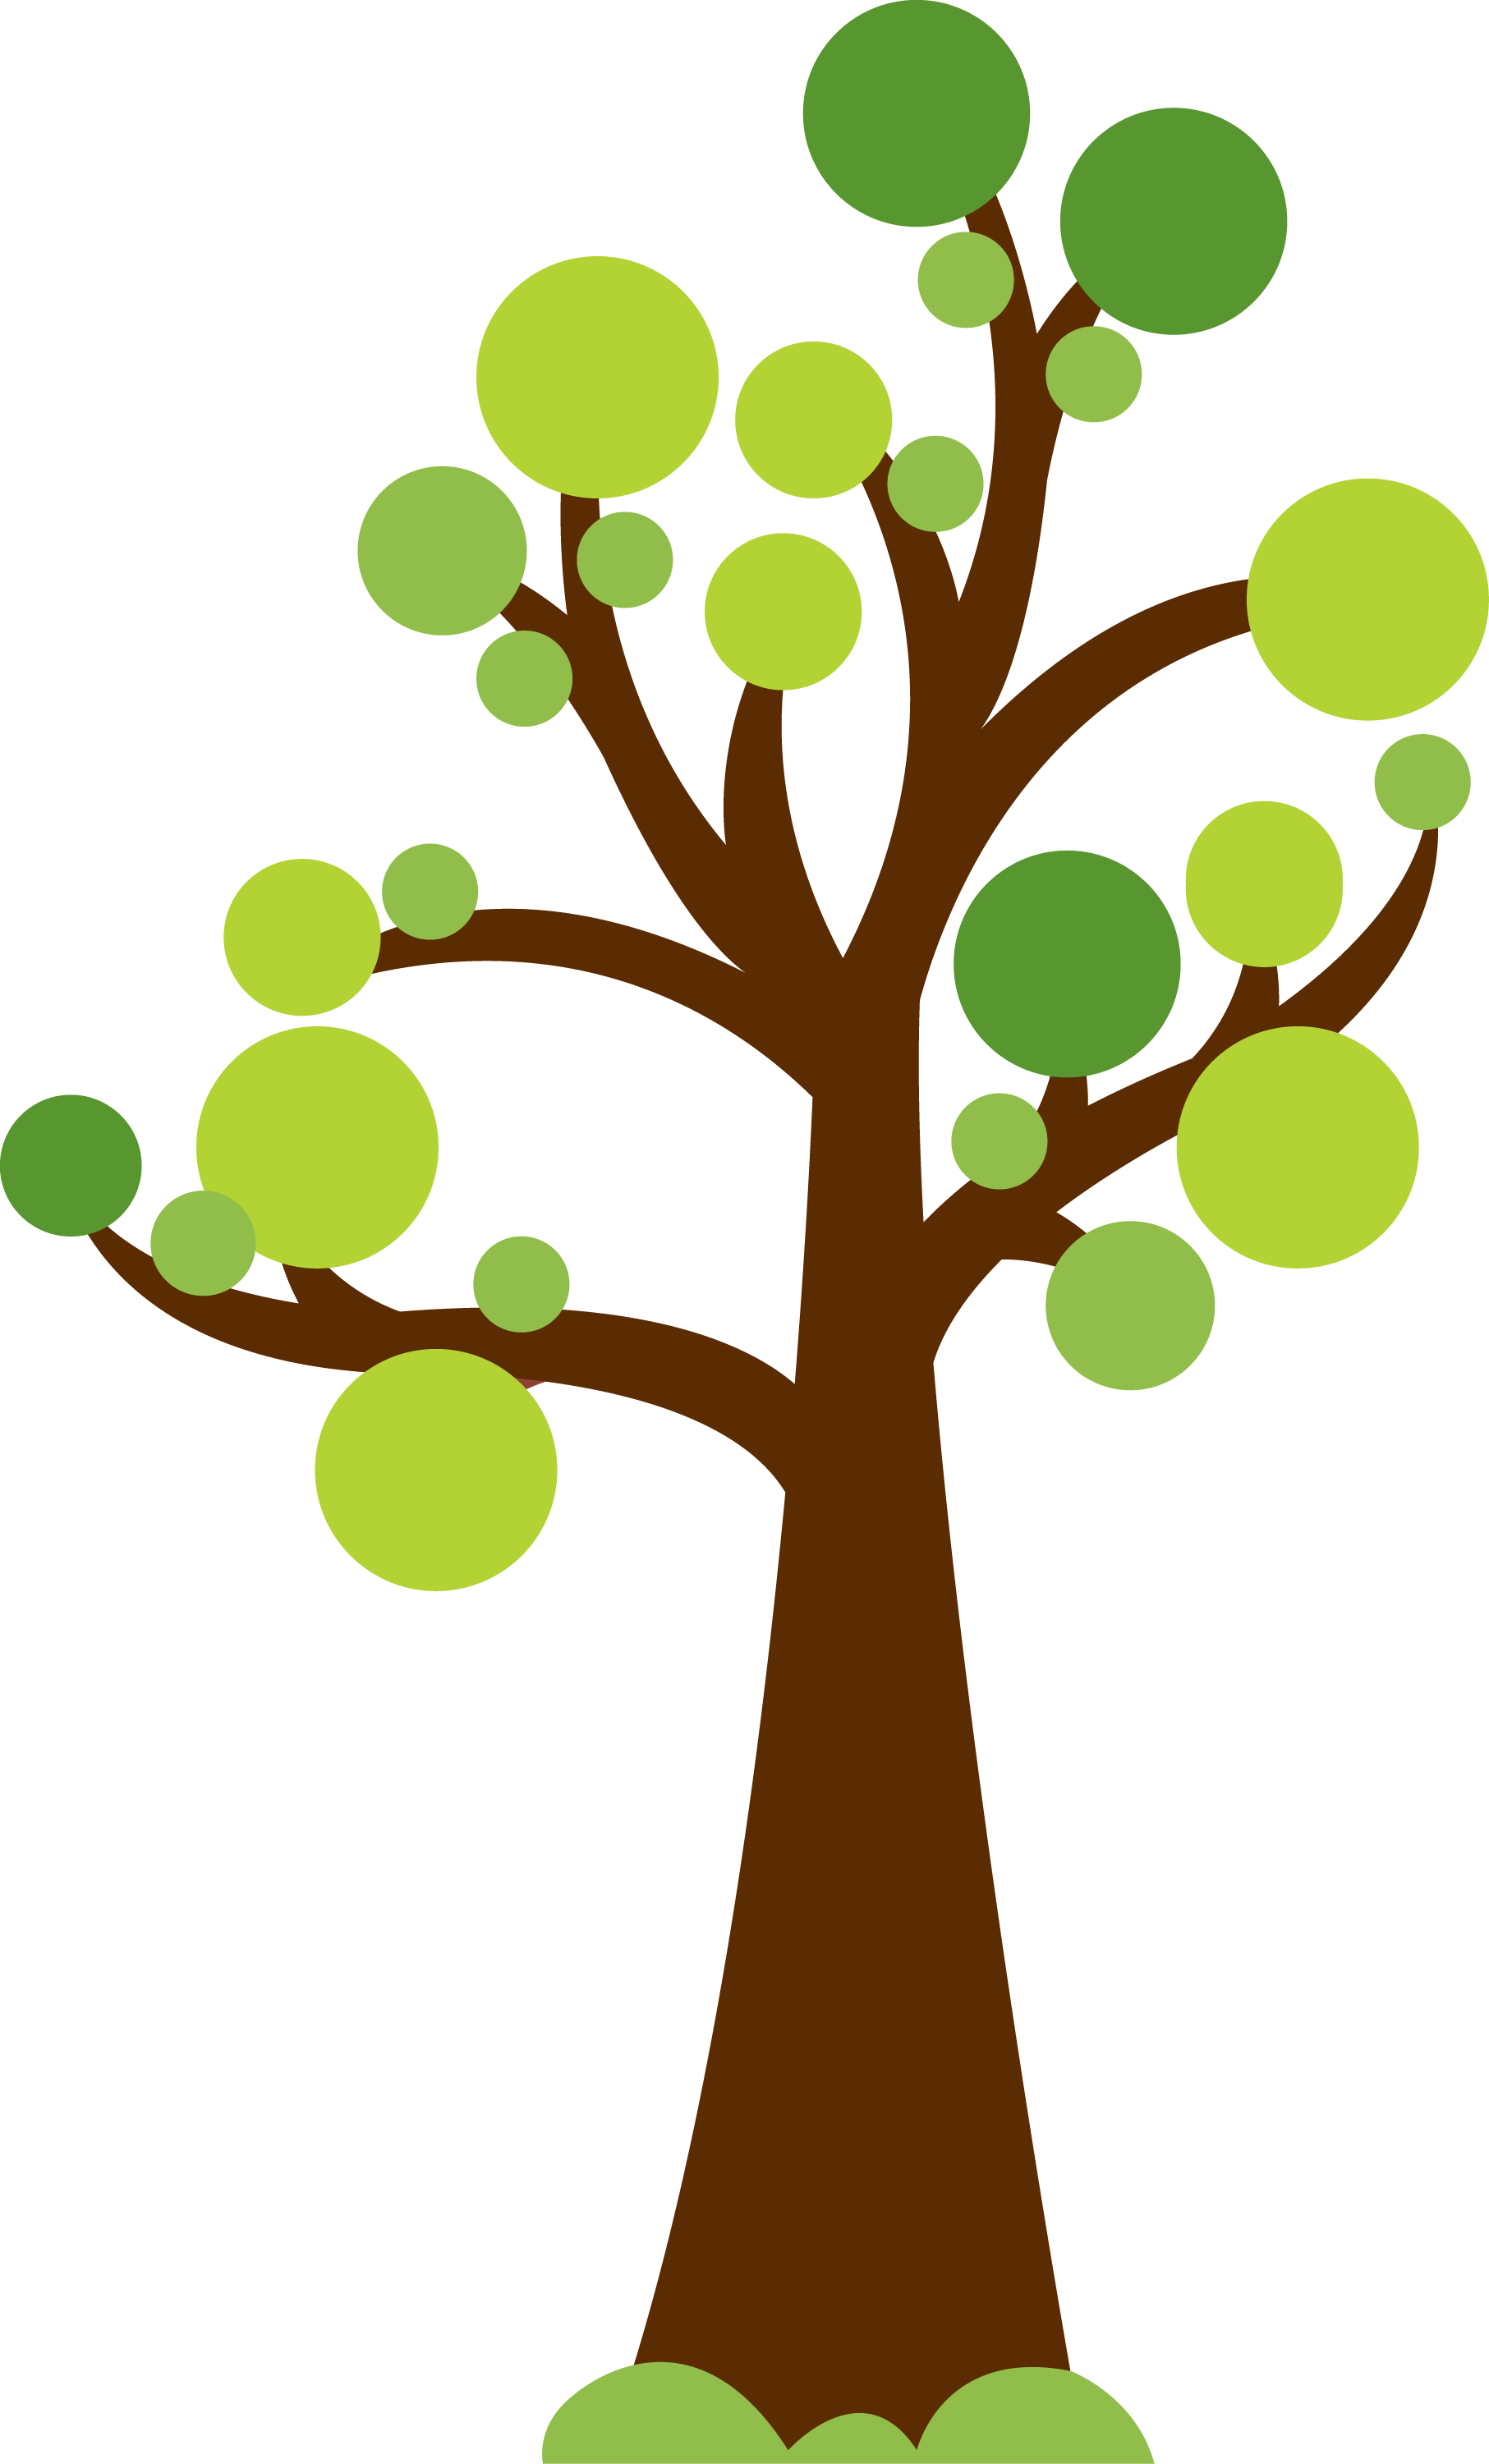 Tree with circles for leaves. Cute image for summer or garden theme.